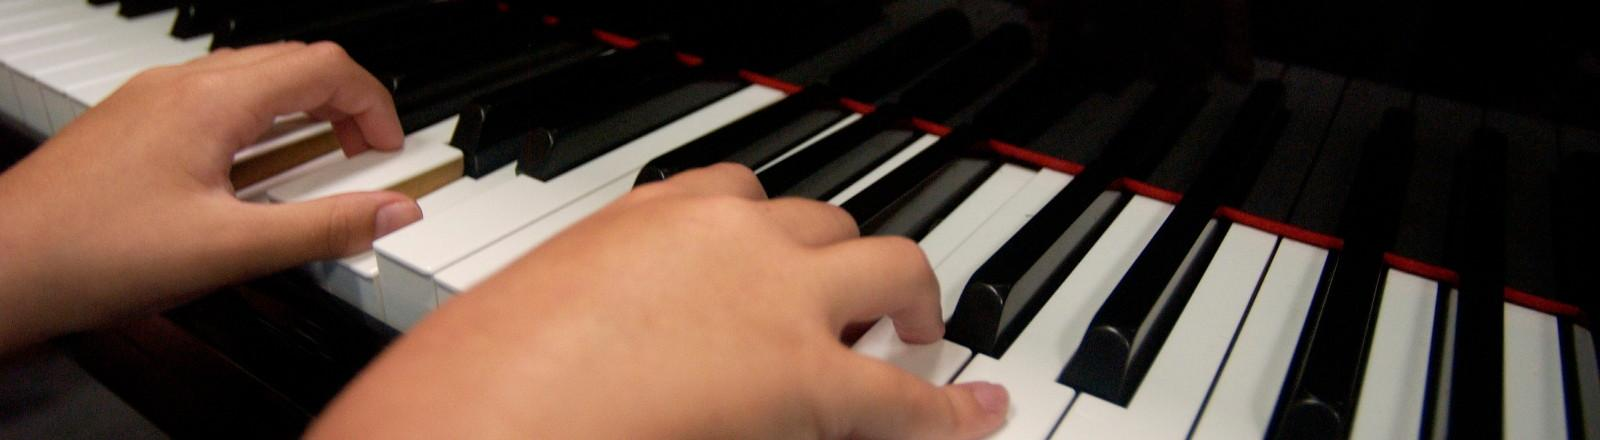 The hands of a child playing the paino